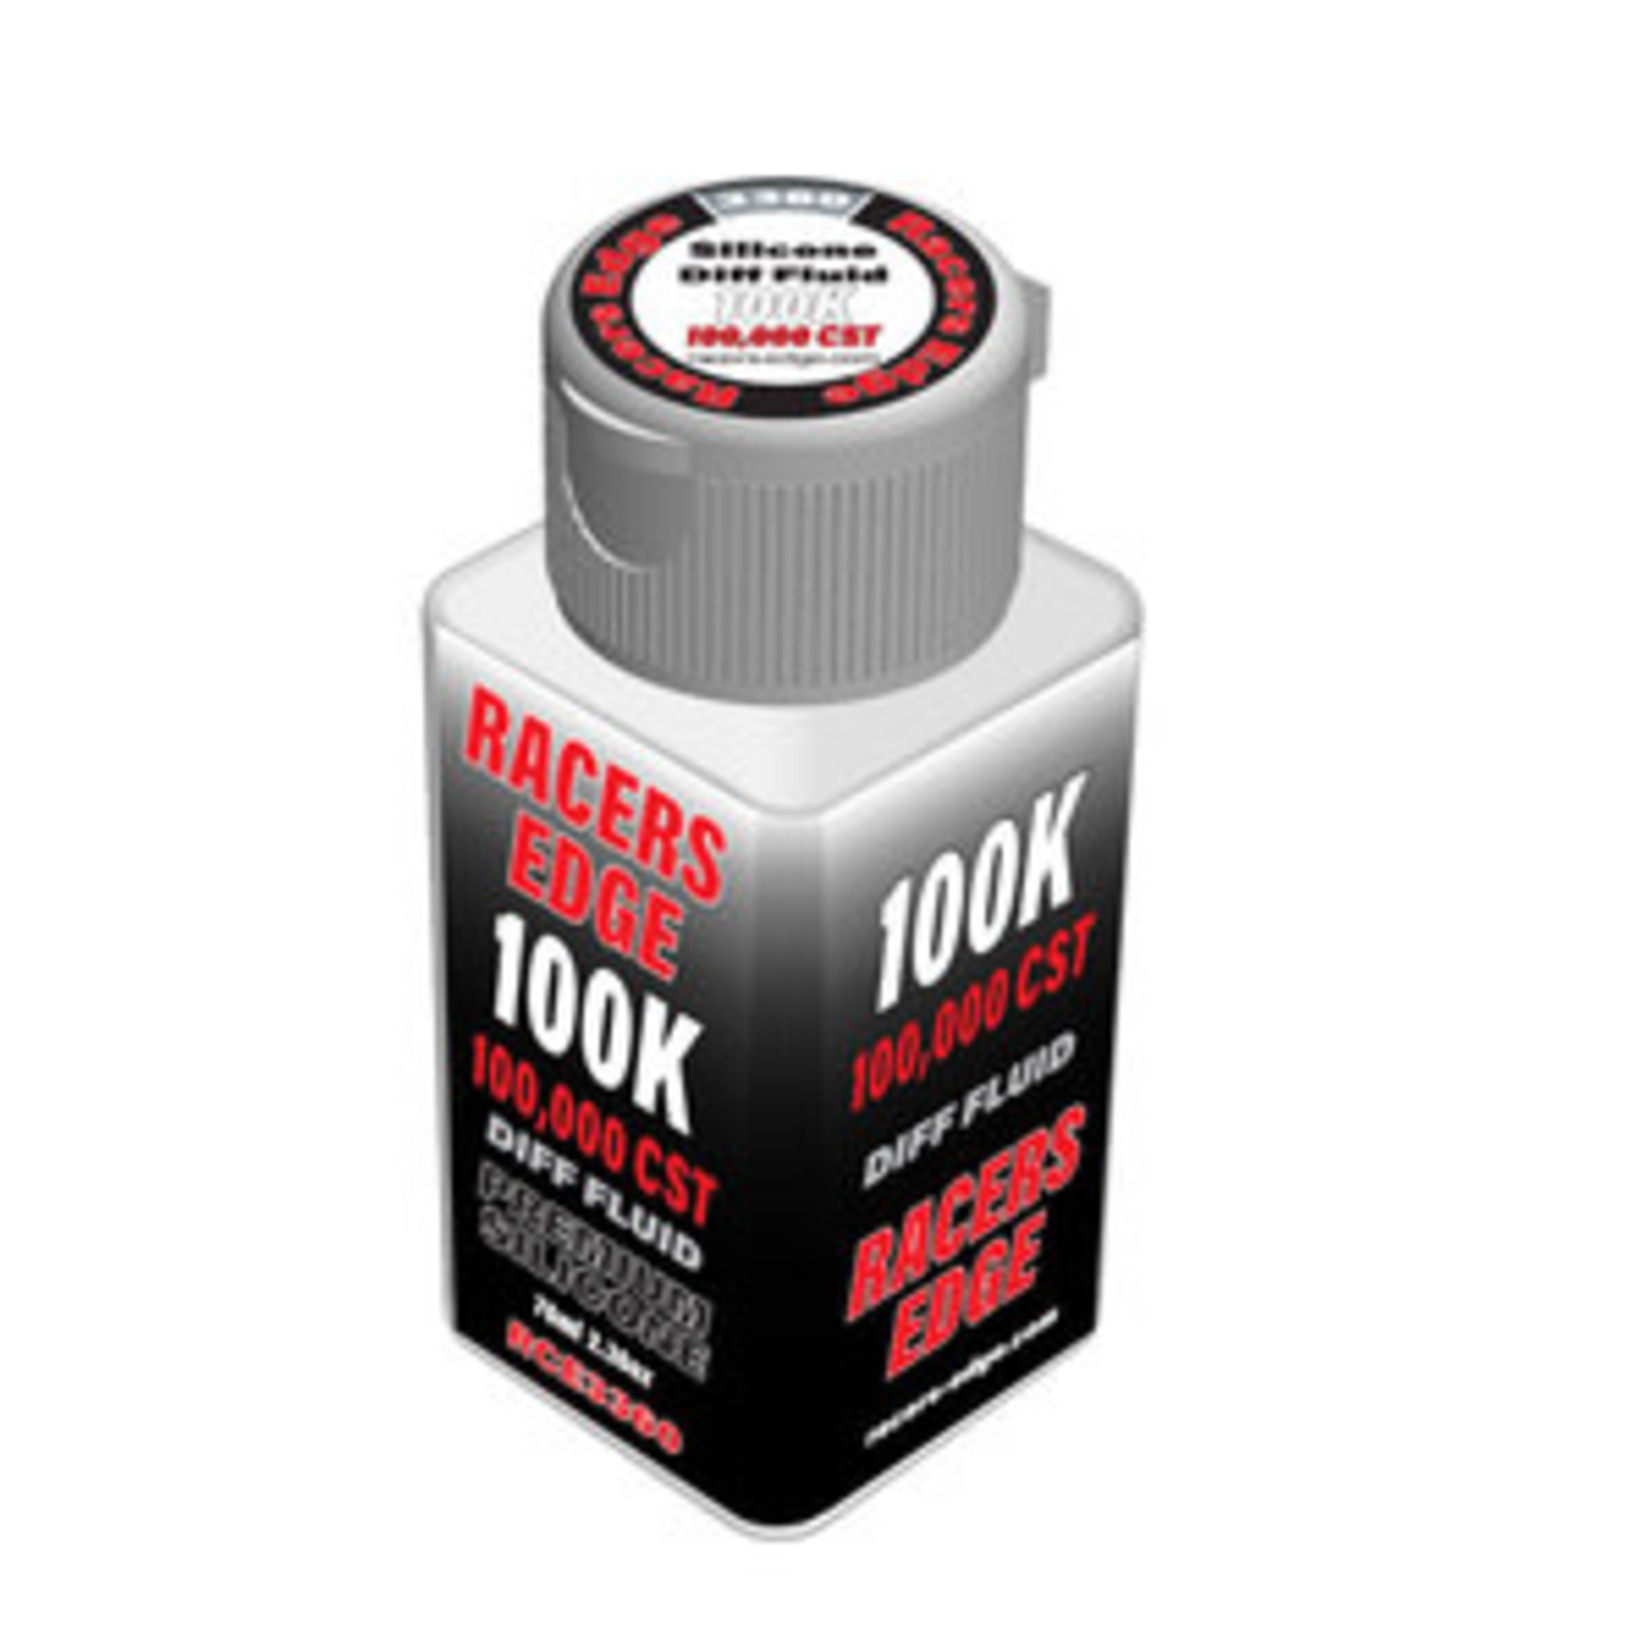 Racers Edge 100,000cSt 70ml 2.36oz Pure Silicone Diff Fluid